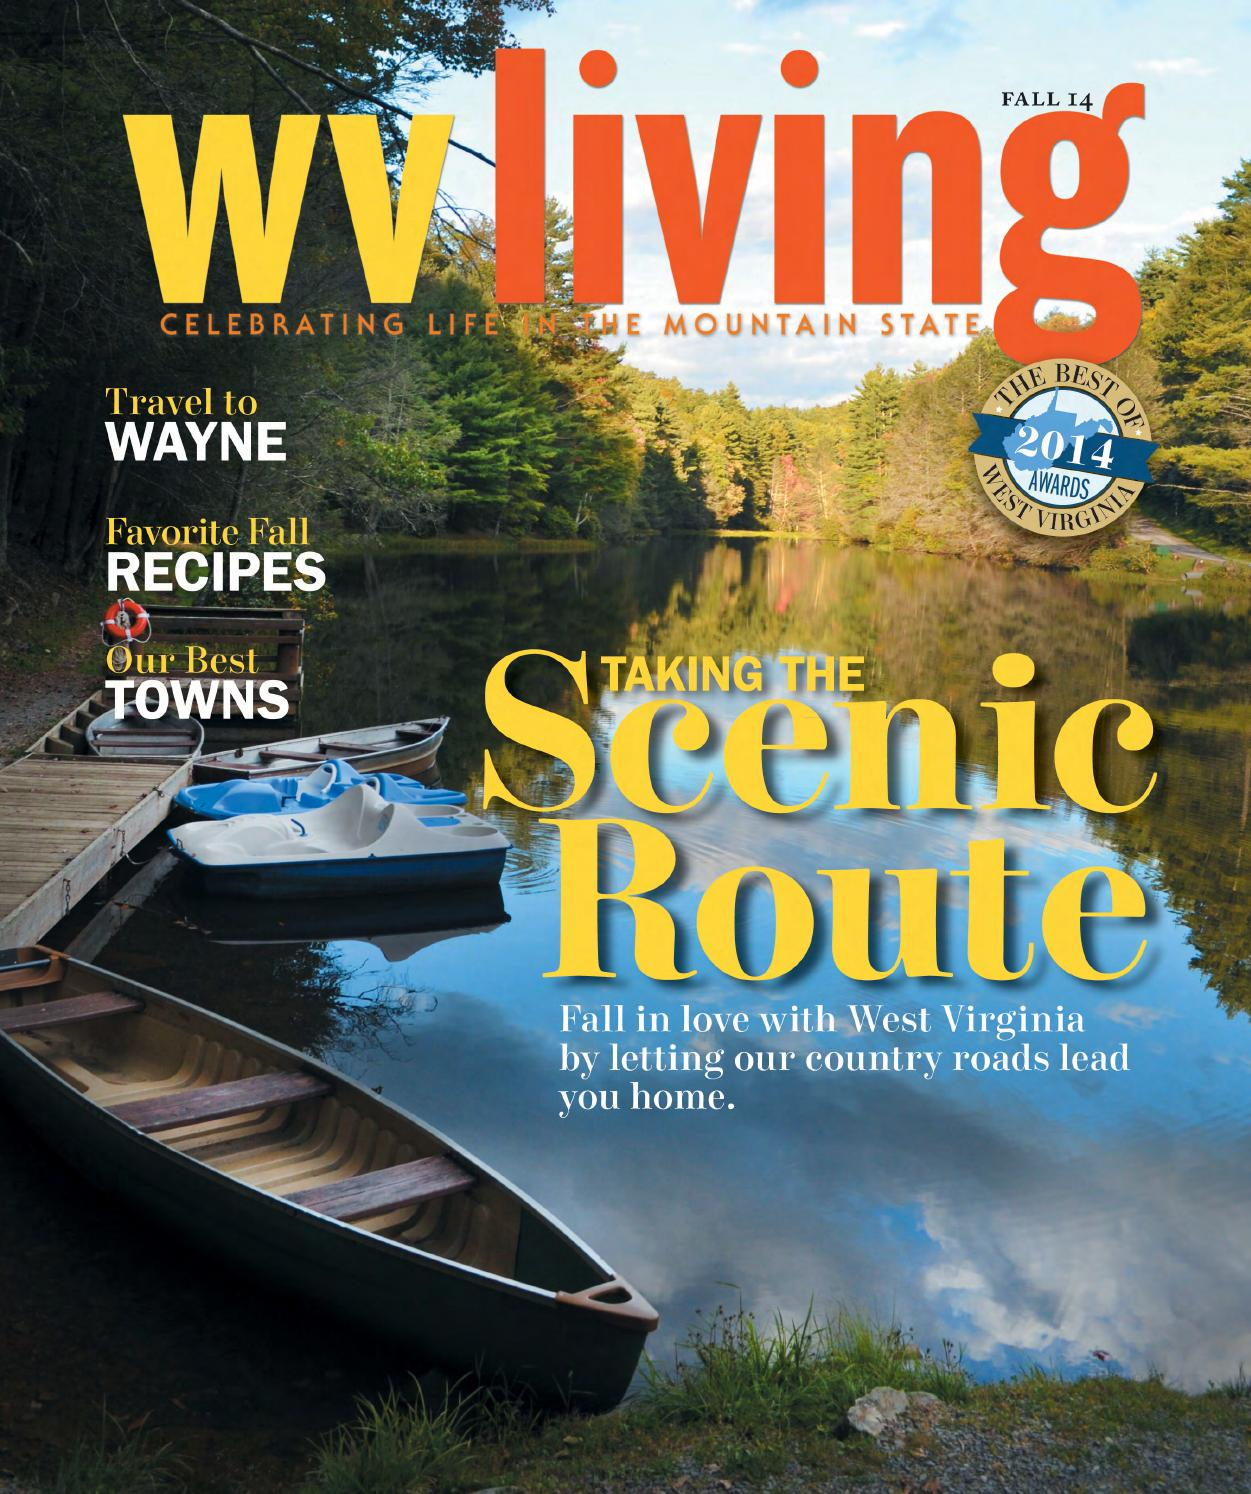 Wv living fall 2014 by wv living issuu malvernweather Images